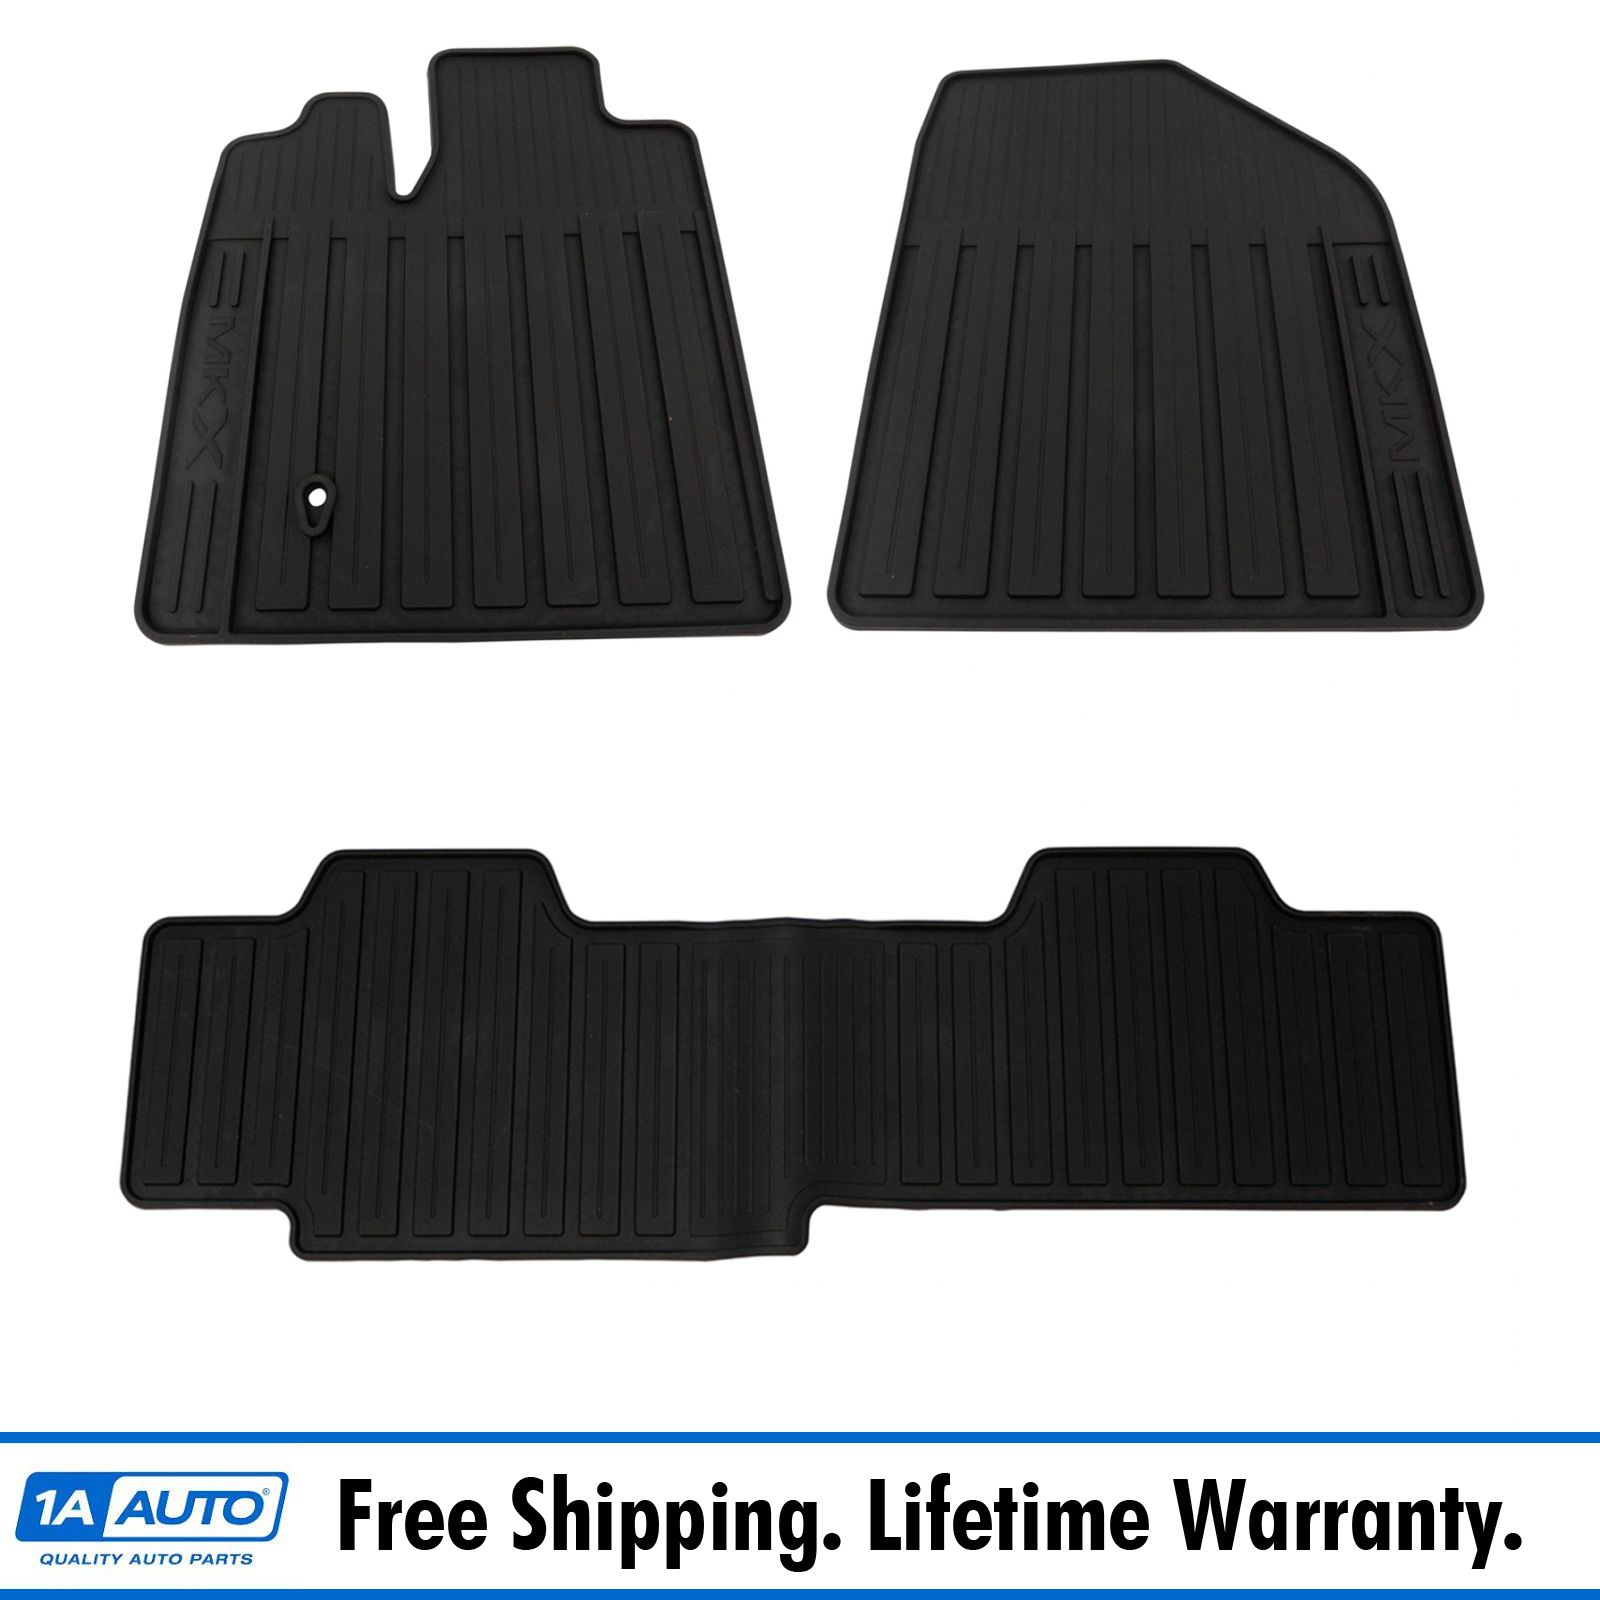 OEM All Weather Floor Mat Set of 4 LH RH Front /& Rear for 11-14 Chrysler 300 RWD